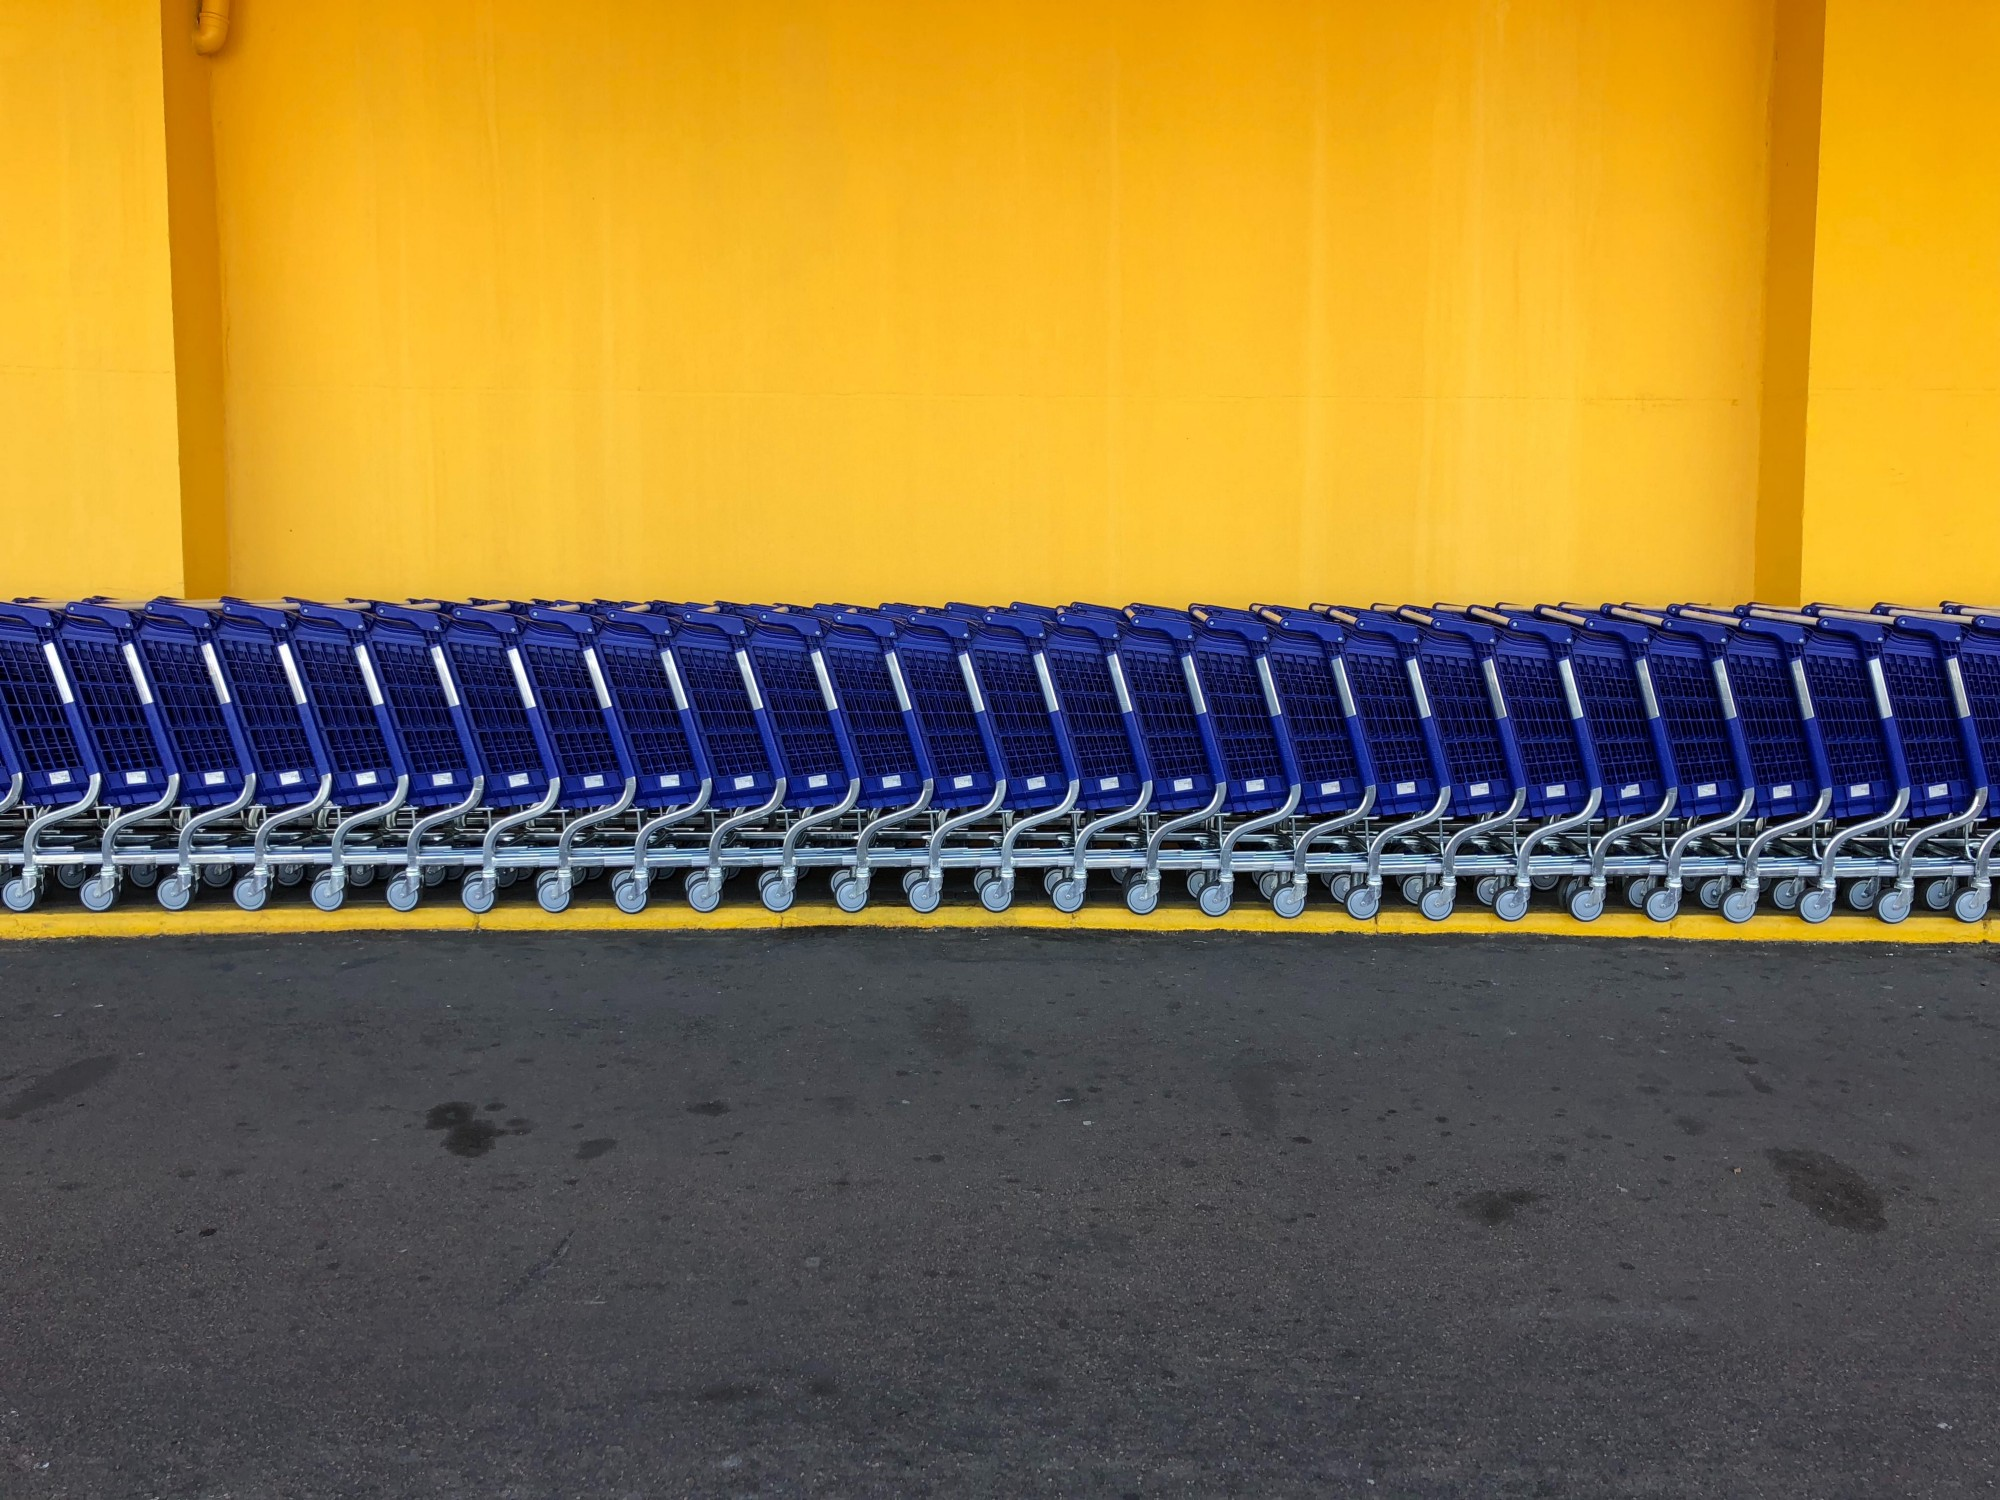 Beautifully composed photo of perfect line of blue, Walmart shopping carts against bright yellow wall.